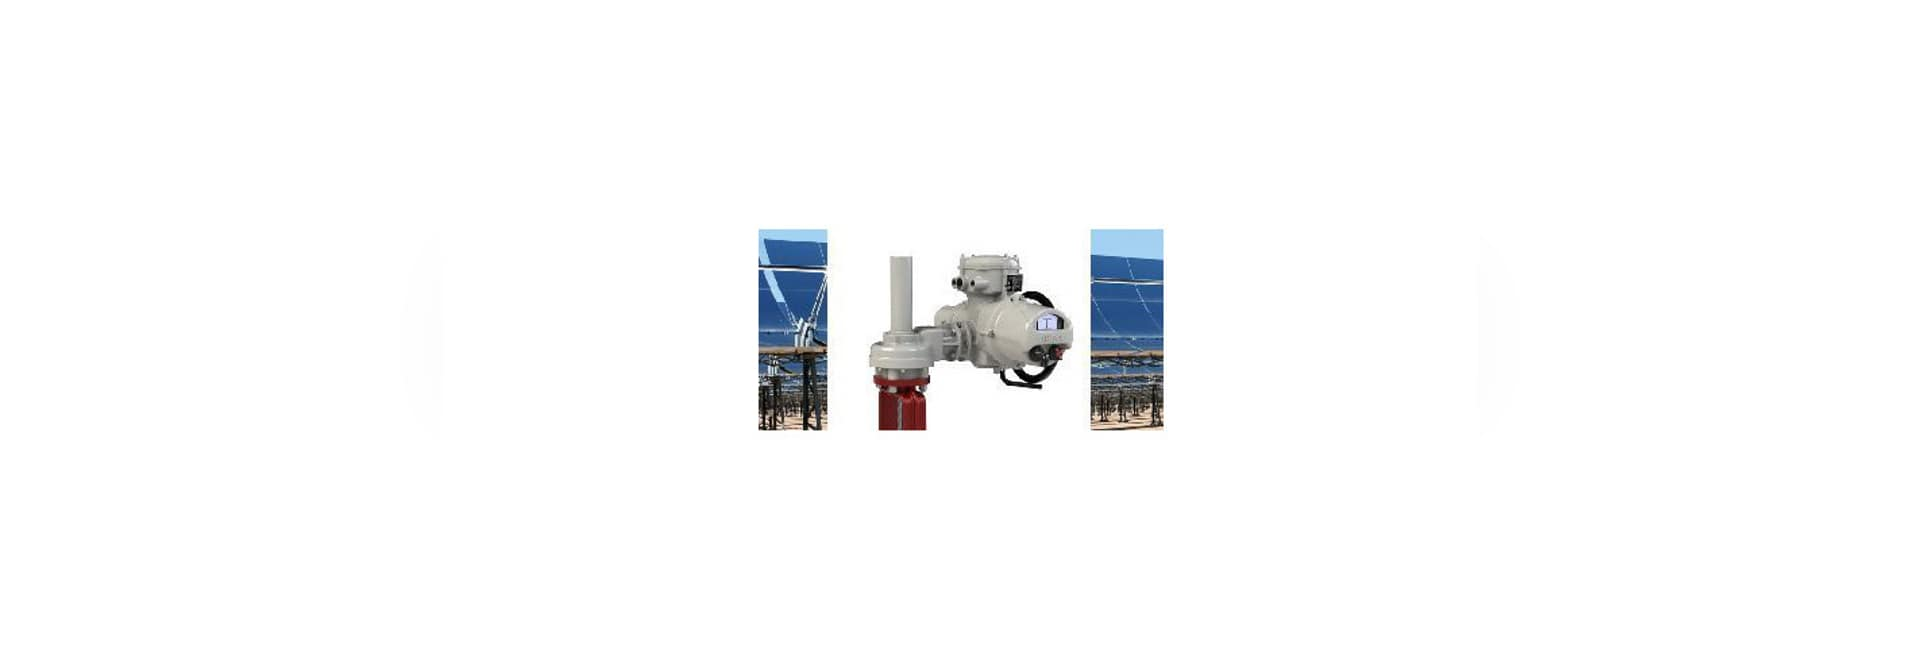 Increased Rotork valve automation improves operations at solar power